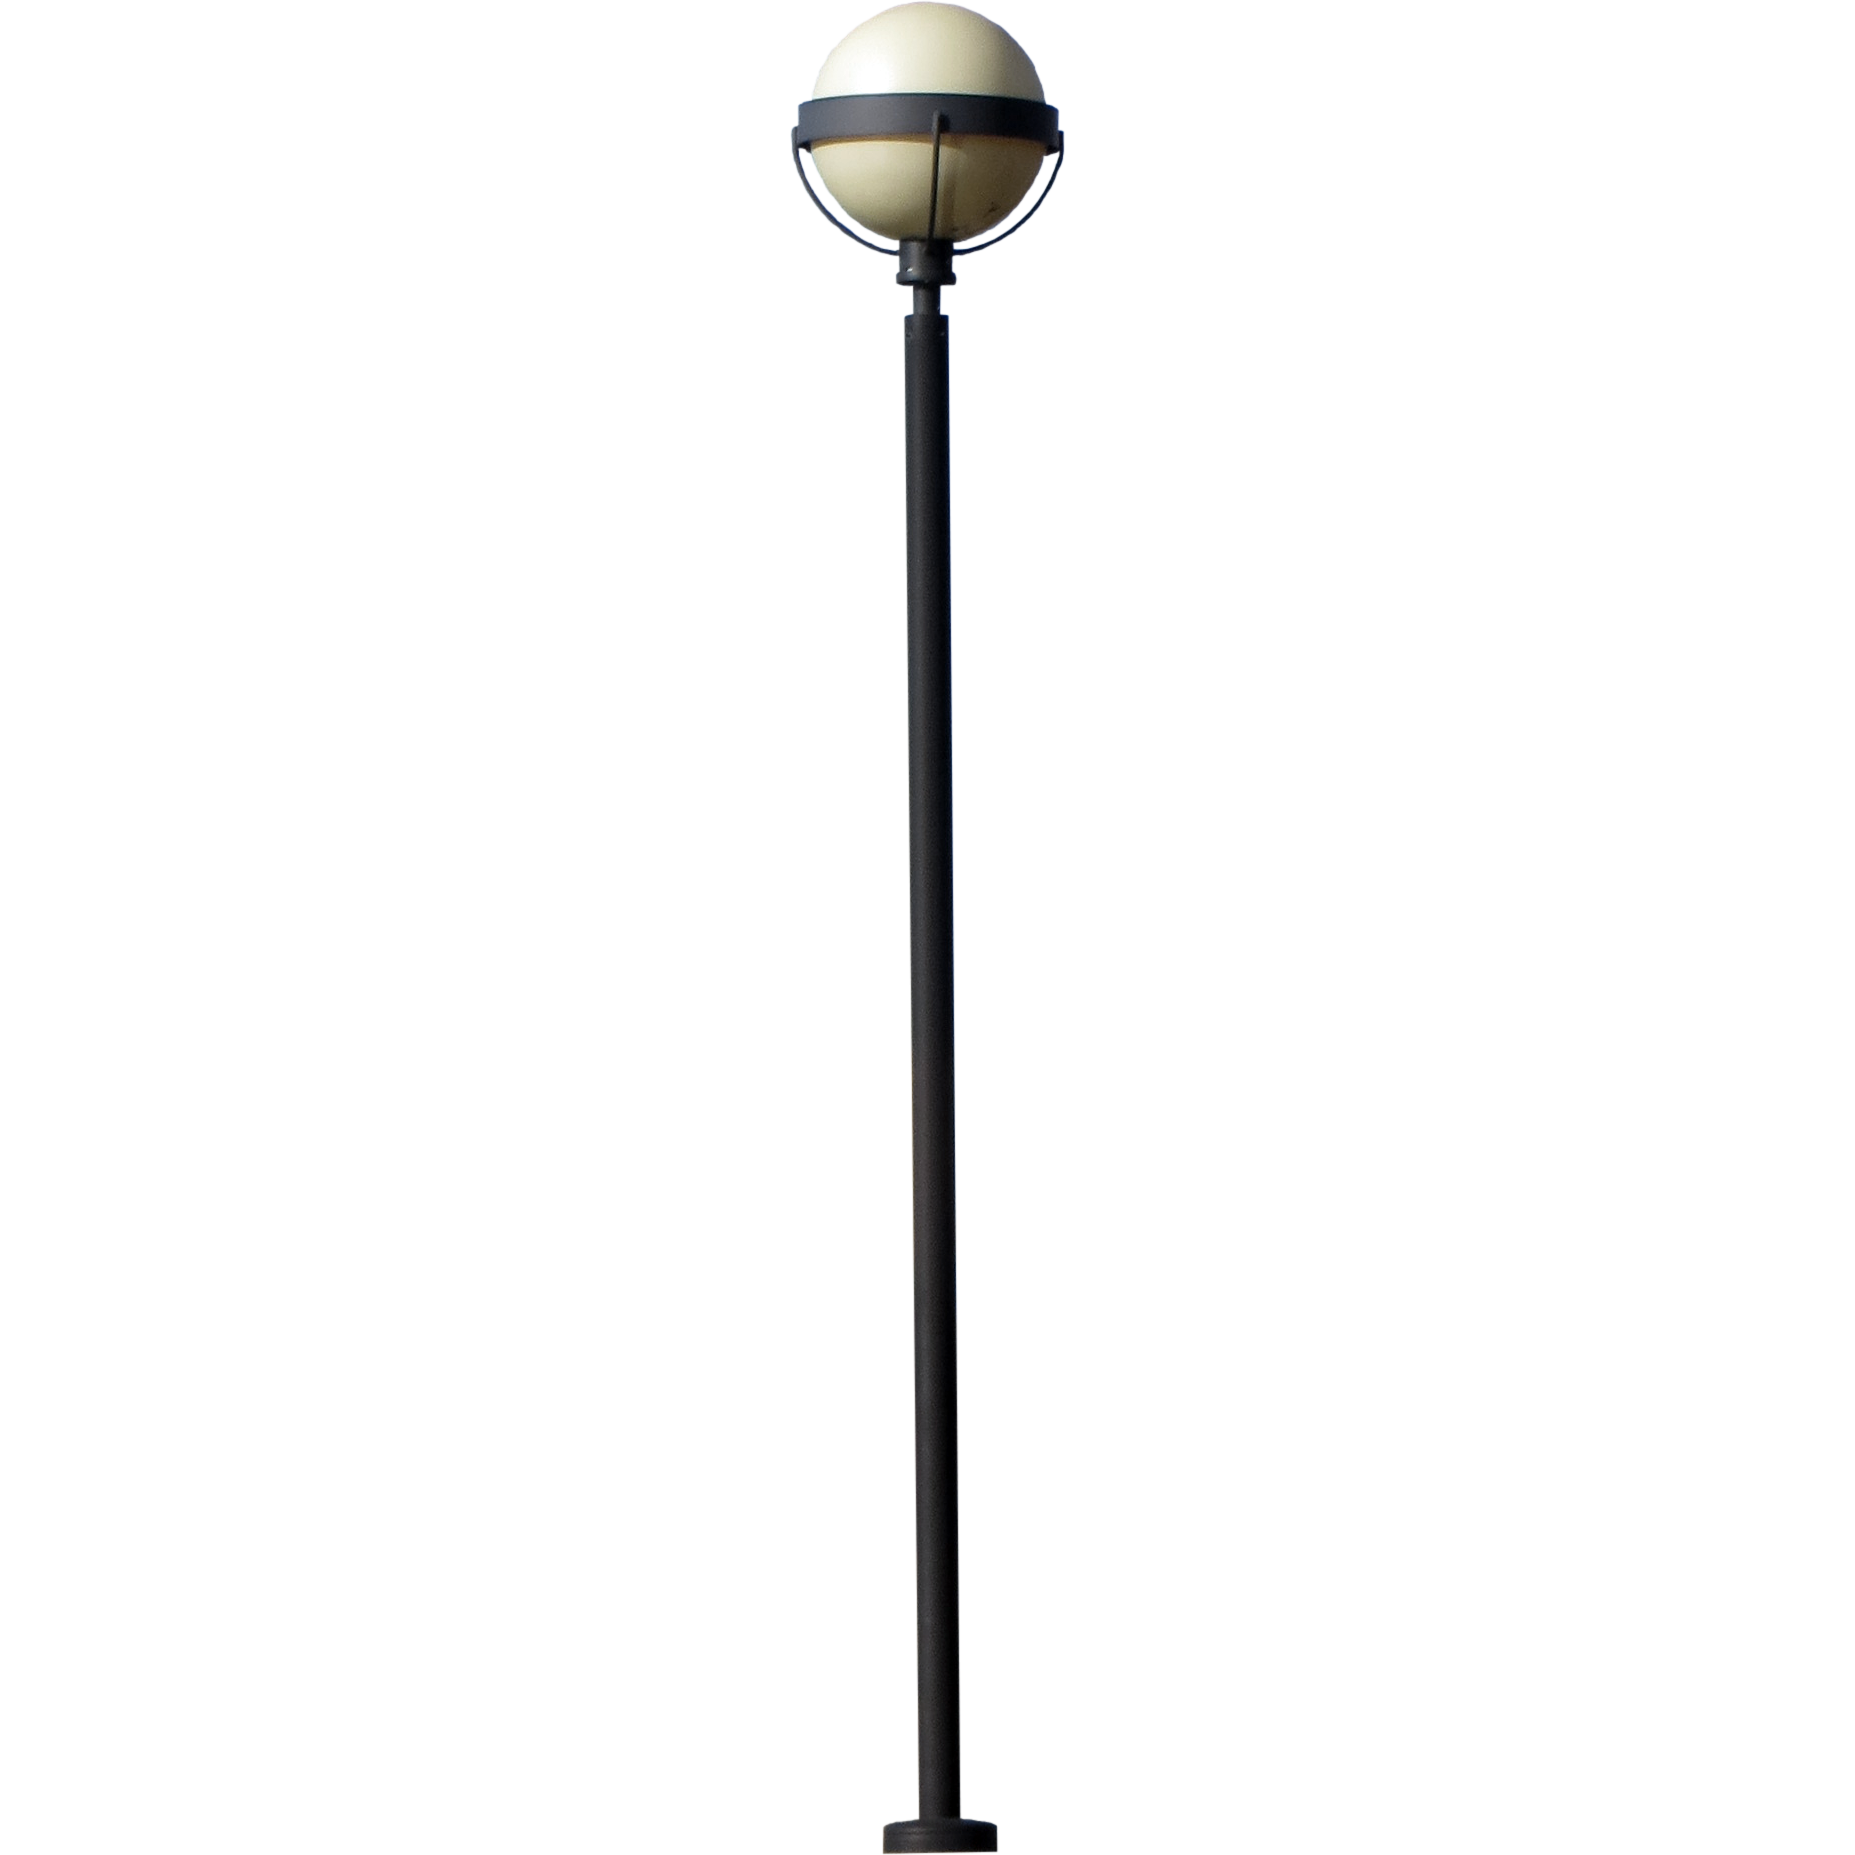 Lamp Post clipart Street clipart Lamp Lamp pole